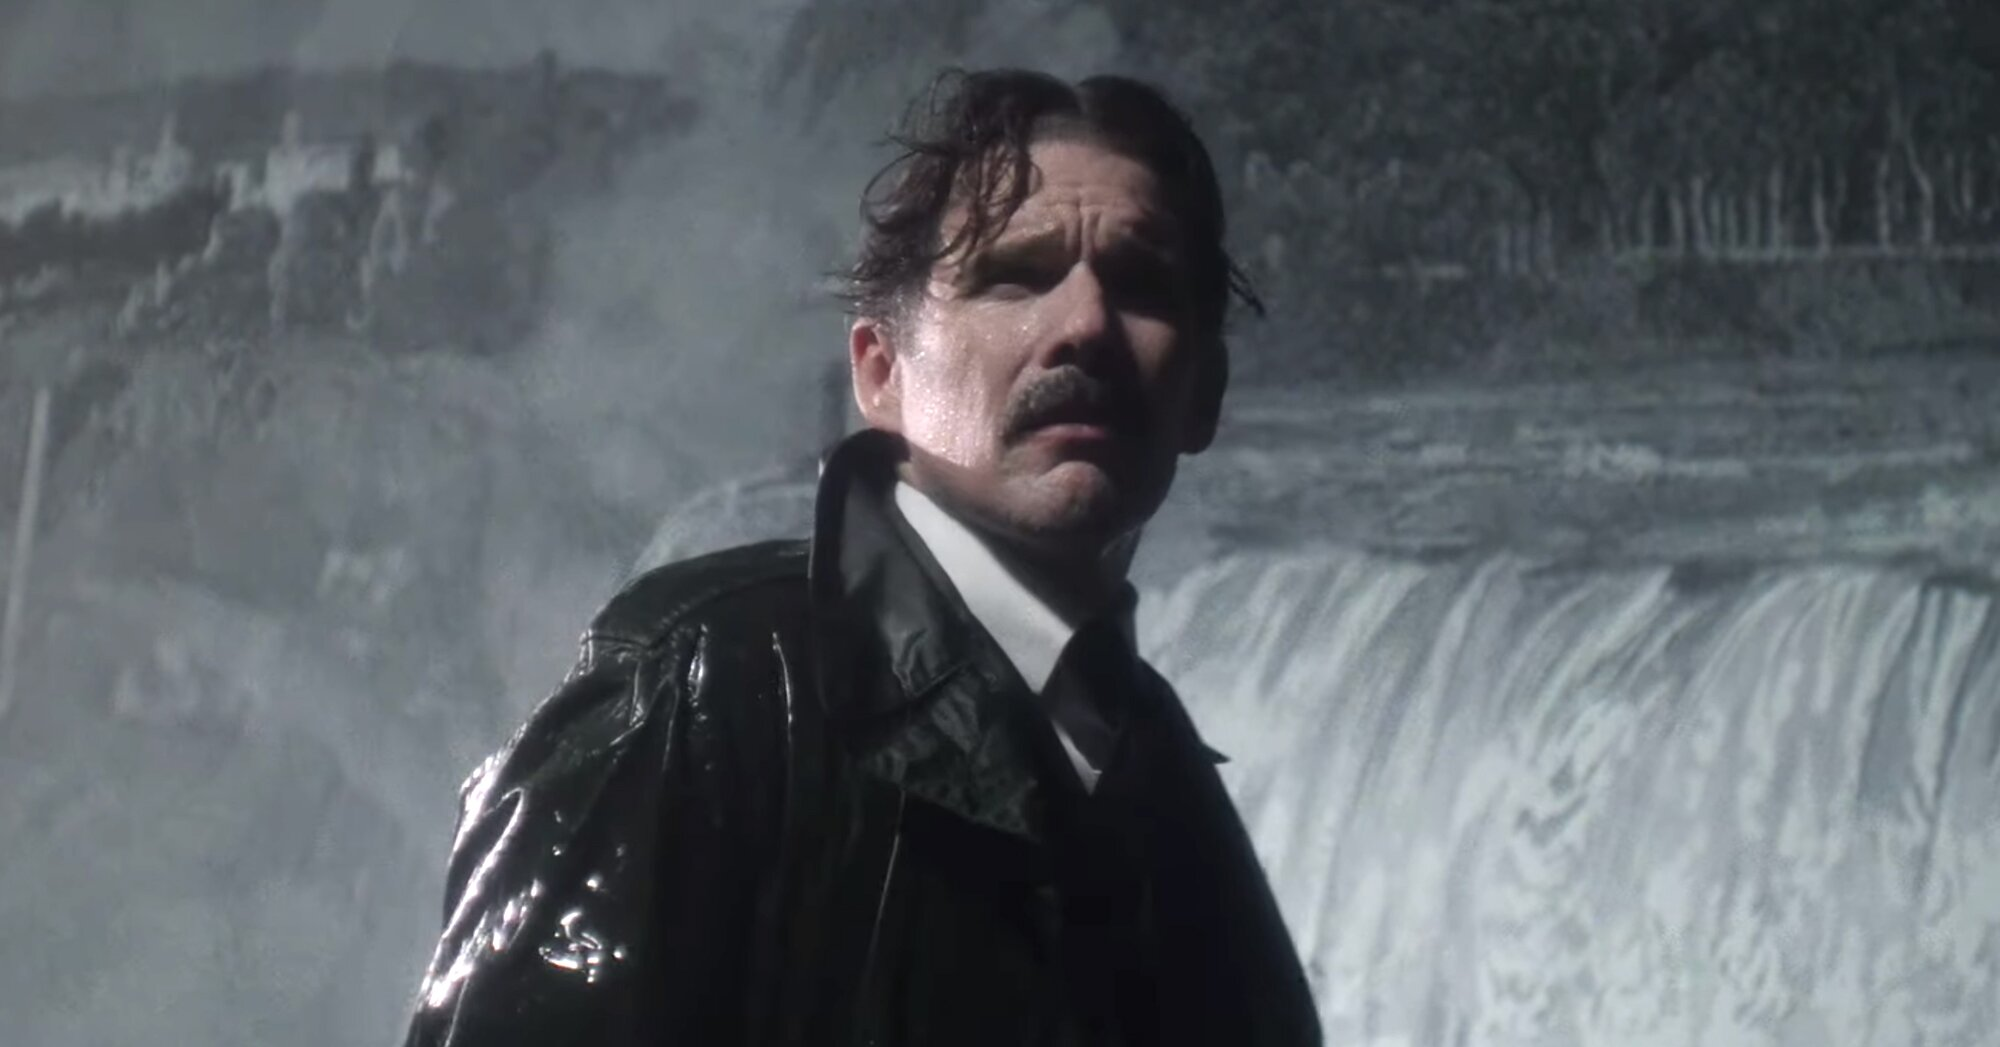 Ethan Hawke is electric in 'Tesla' trailer